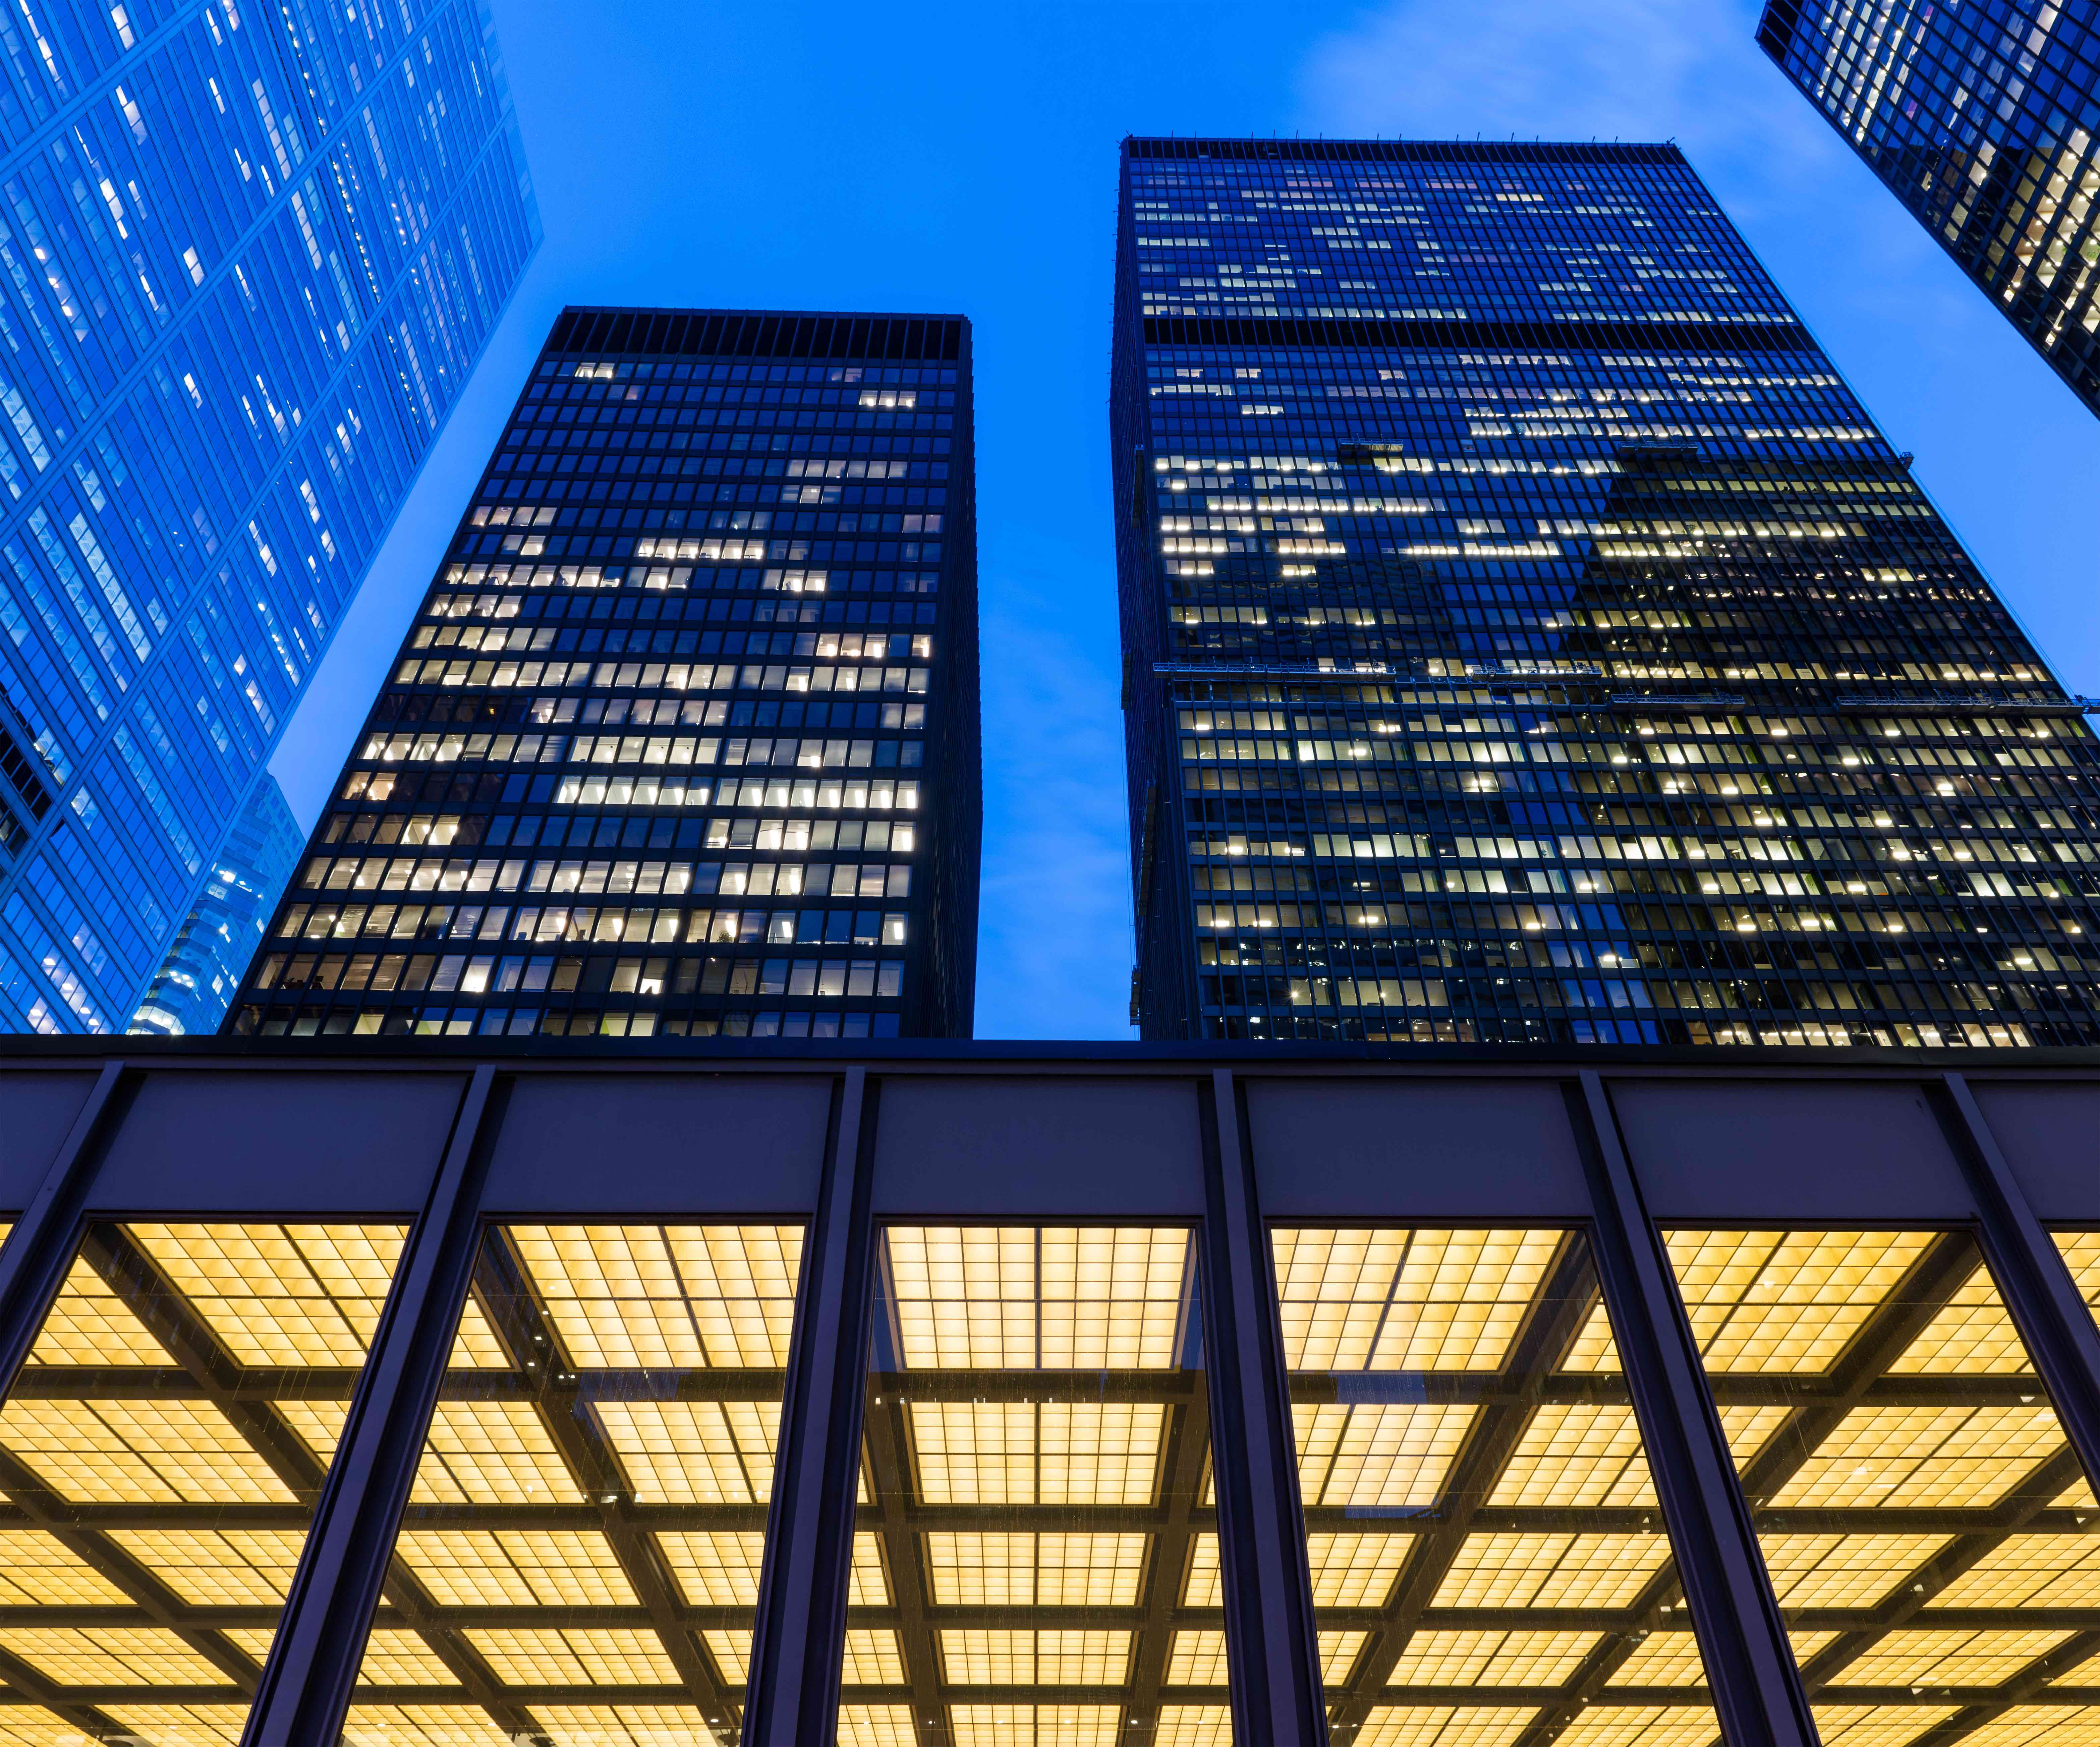 Detail of illuminated modern skyscrapers in Toronto Financial District (Dominion Centre).